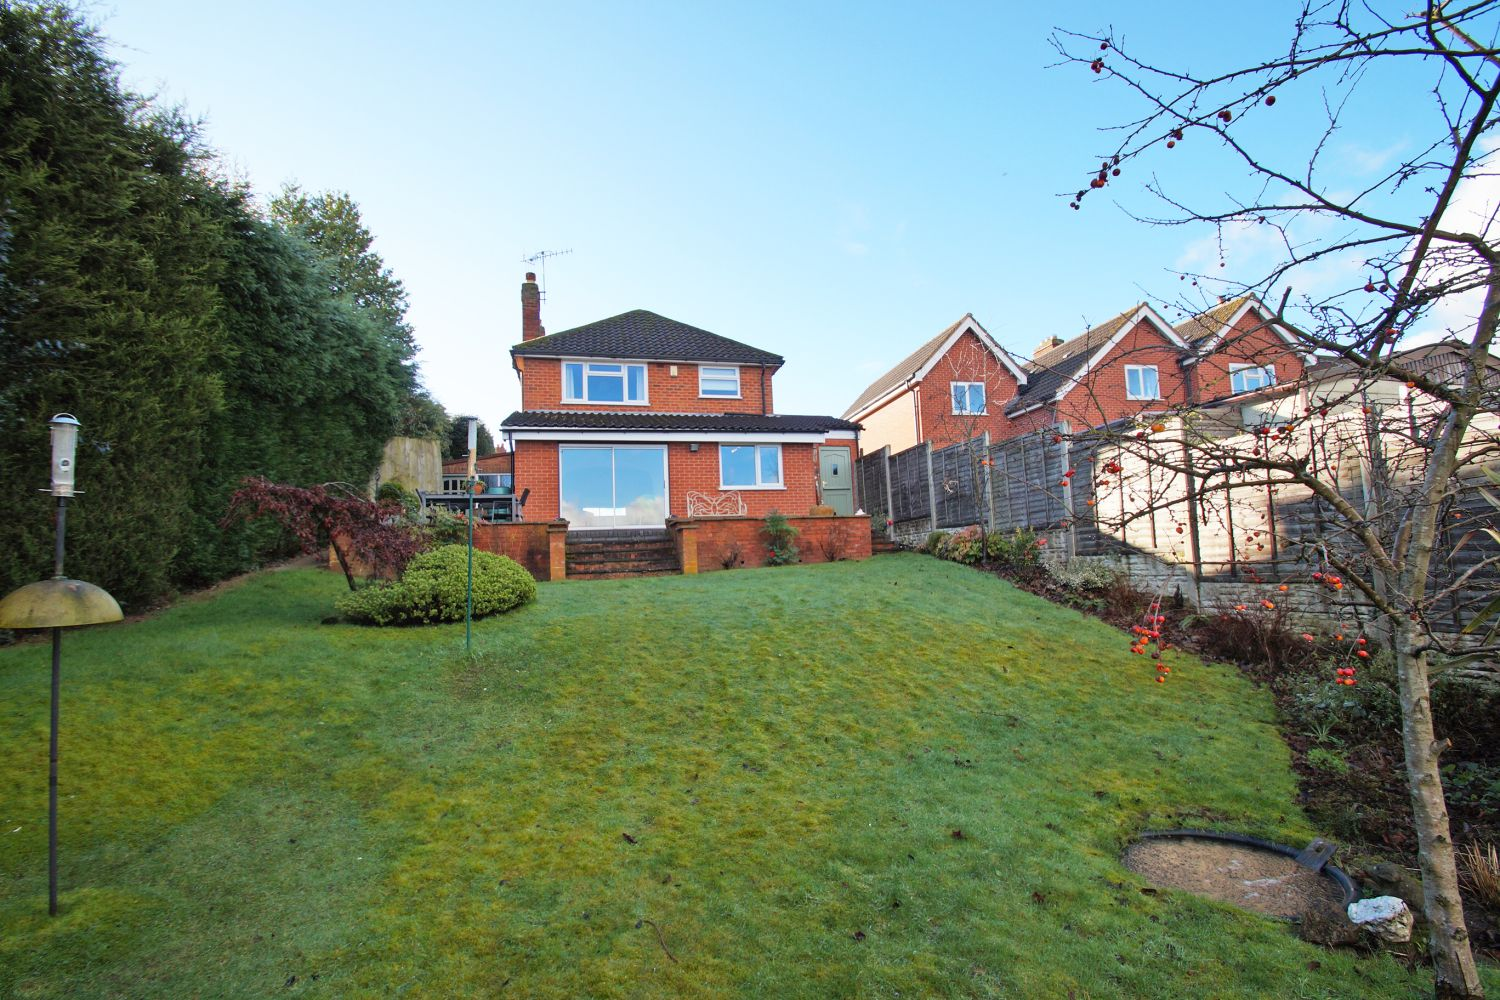 3 bed detached for sale in Fox Lane, Bromsgrove 21